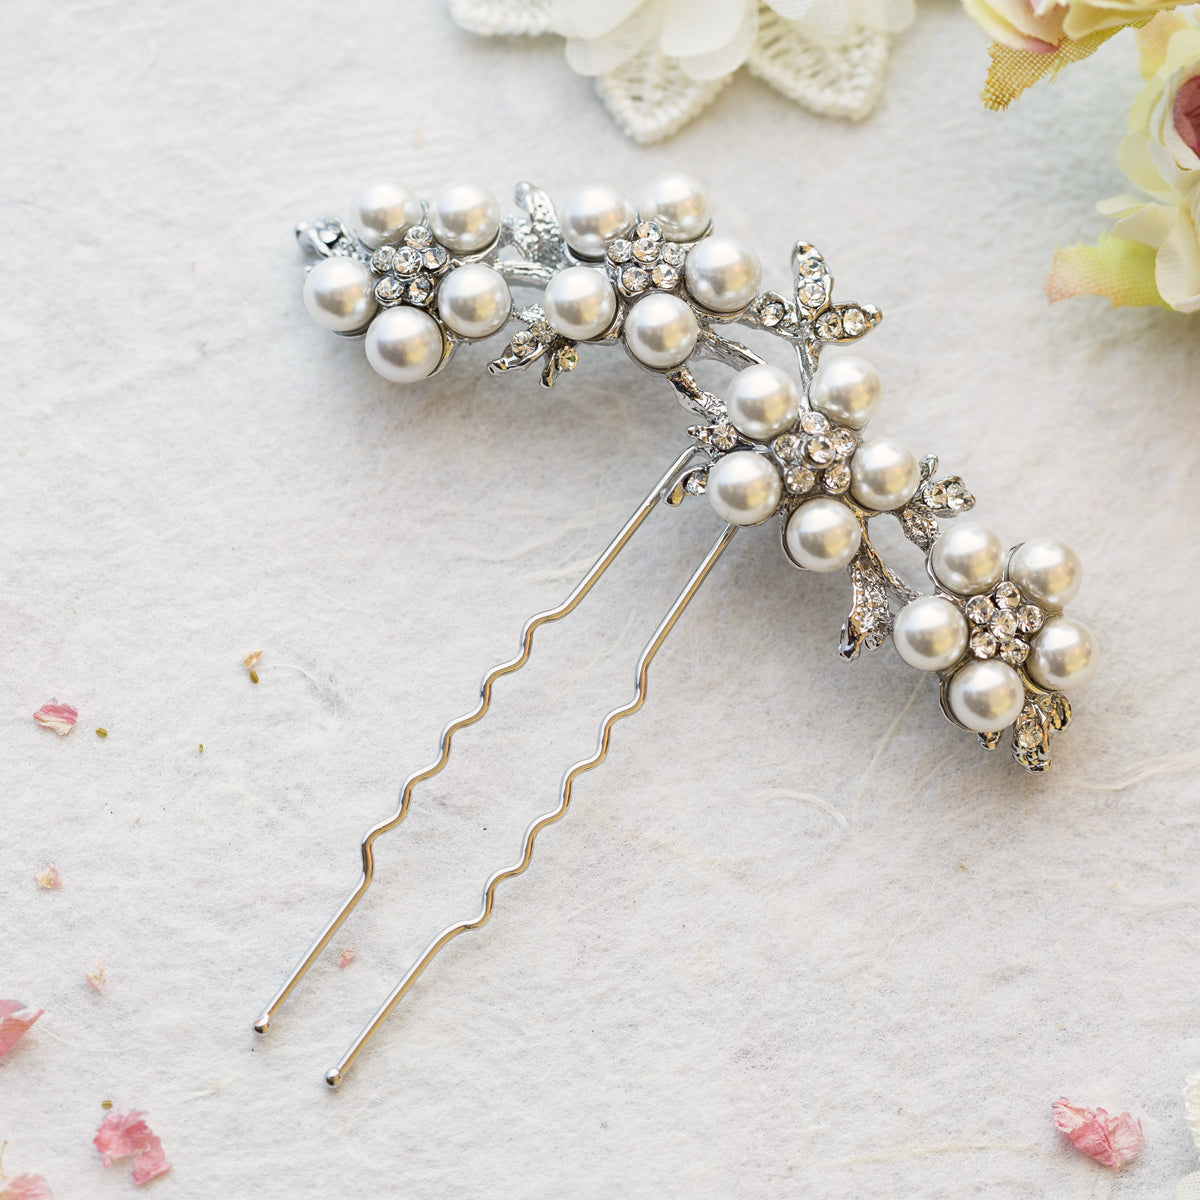 Esha crystal hair pin